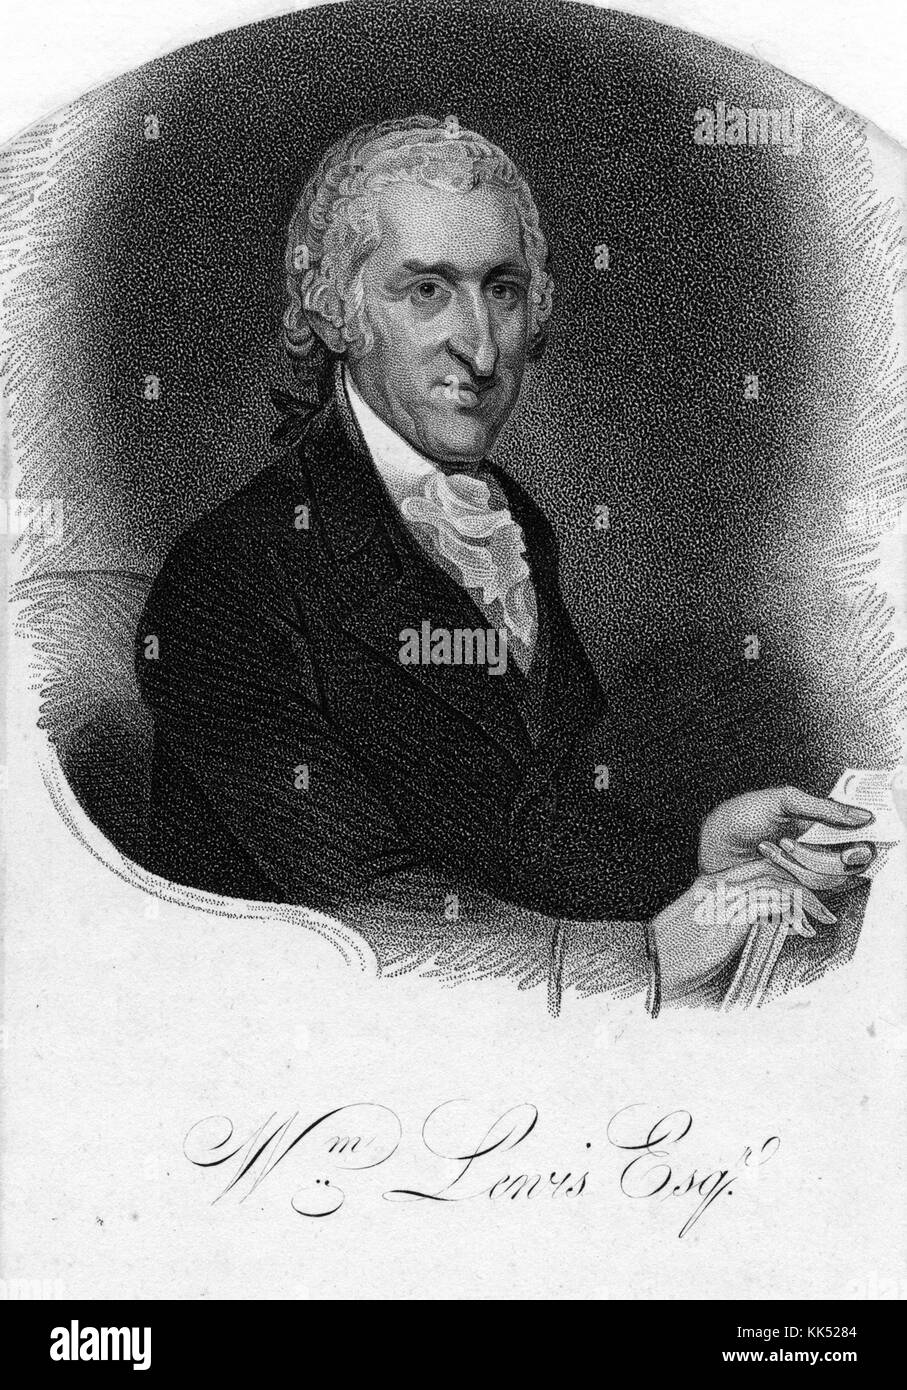 An engraving from a portrait of William Lewis, he was a lawyer and eventually became a judge, during the American - Stock Image